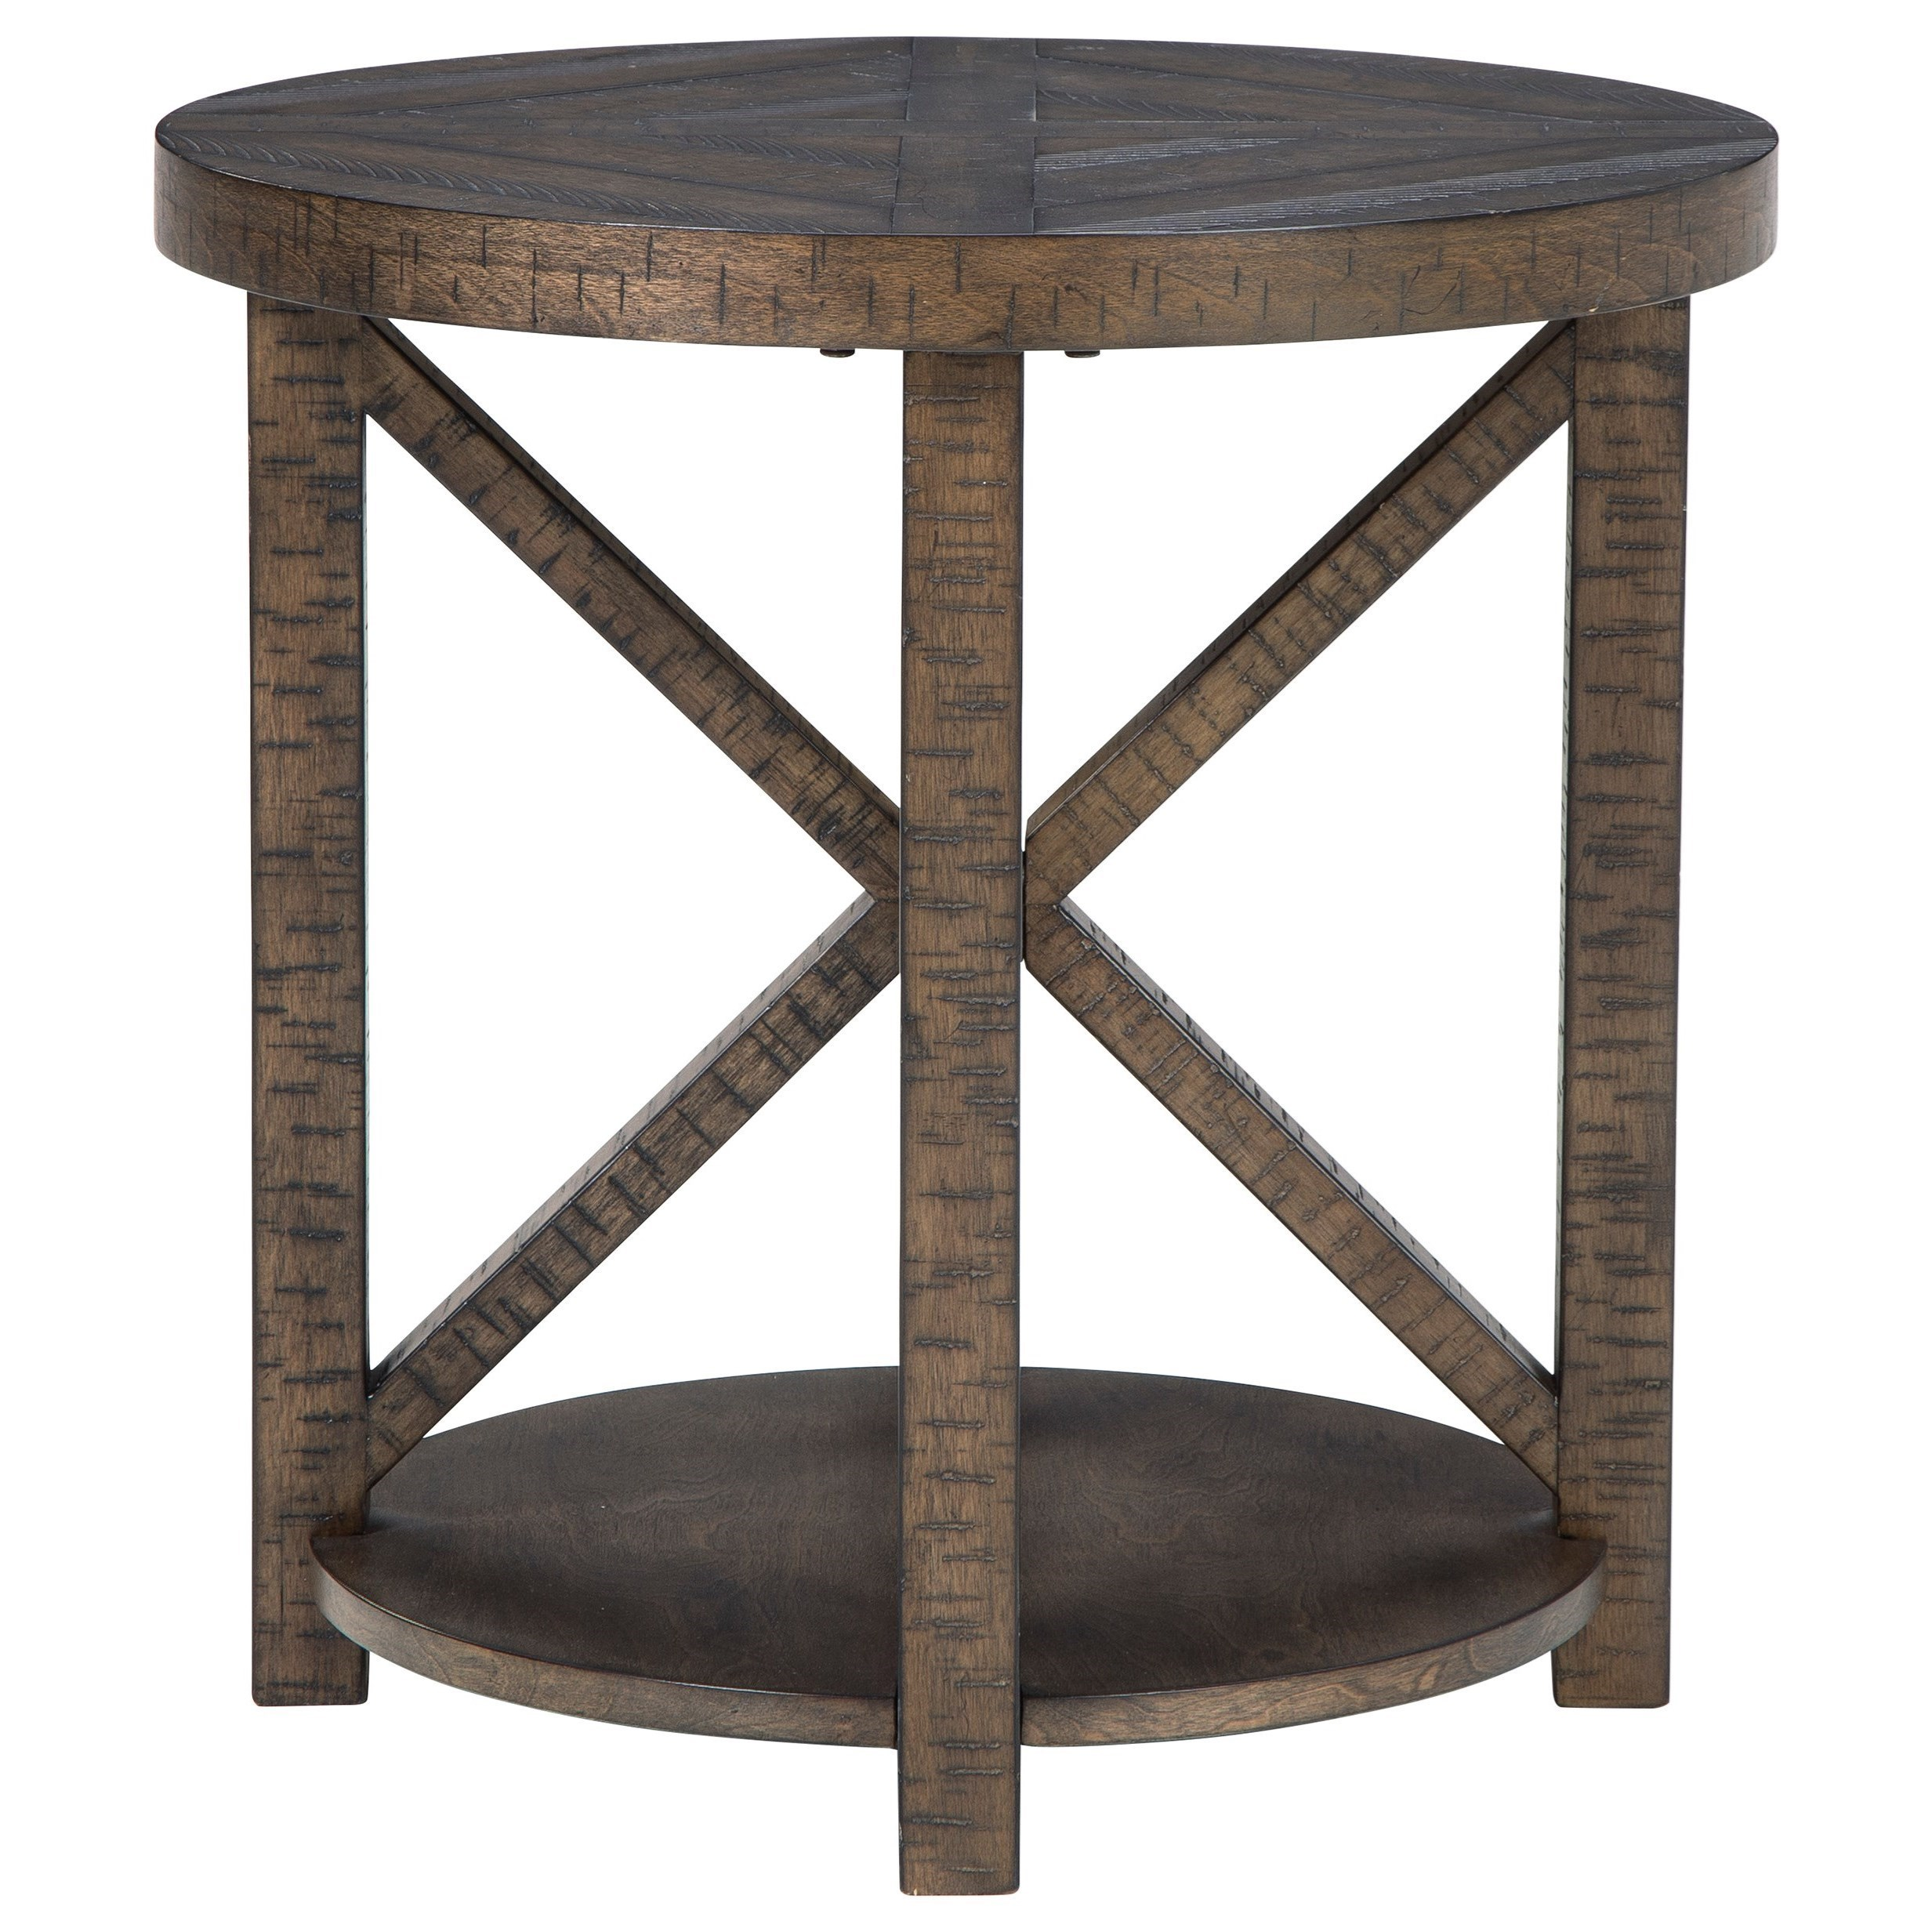 Rustic Round End Table with Shelf